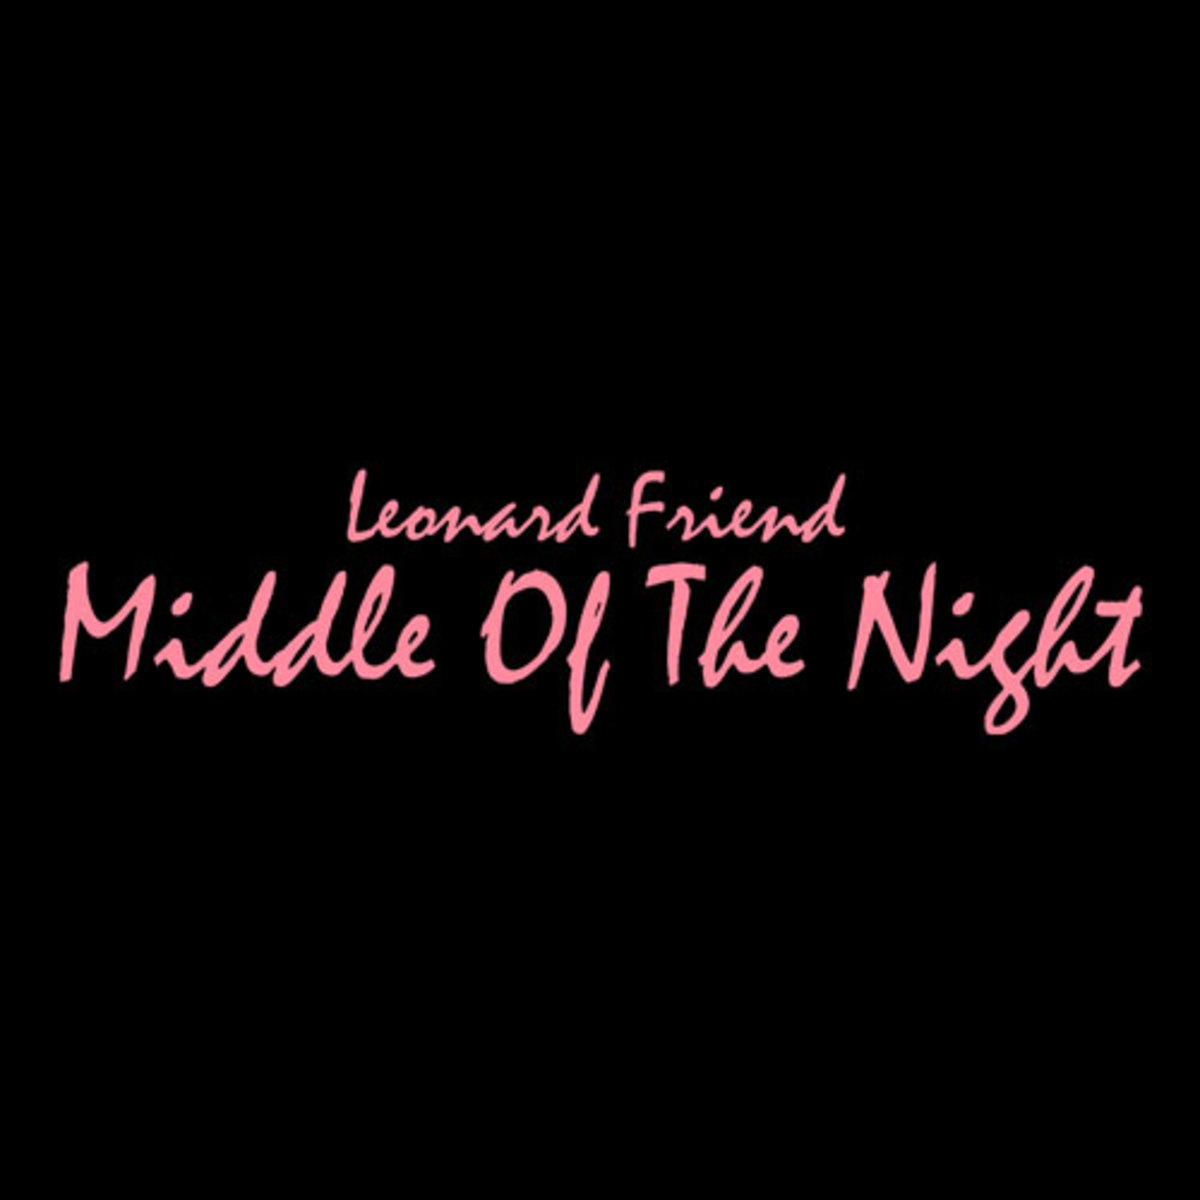 leonardfriend-middlenight.jpg